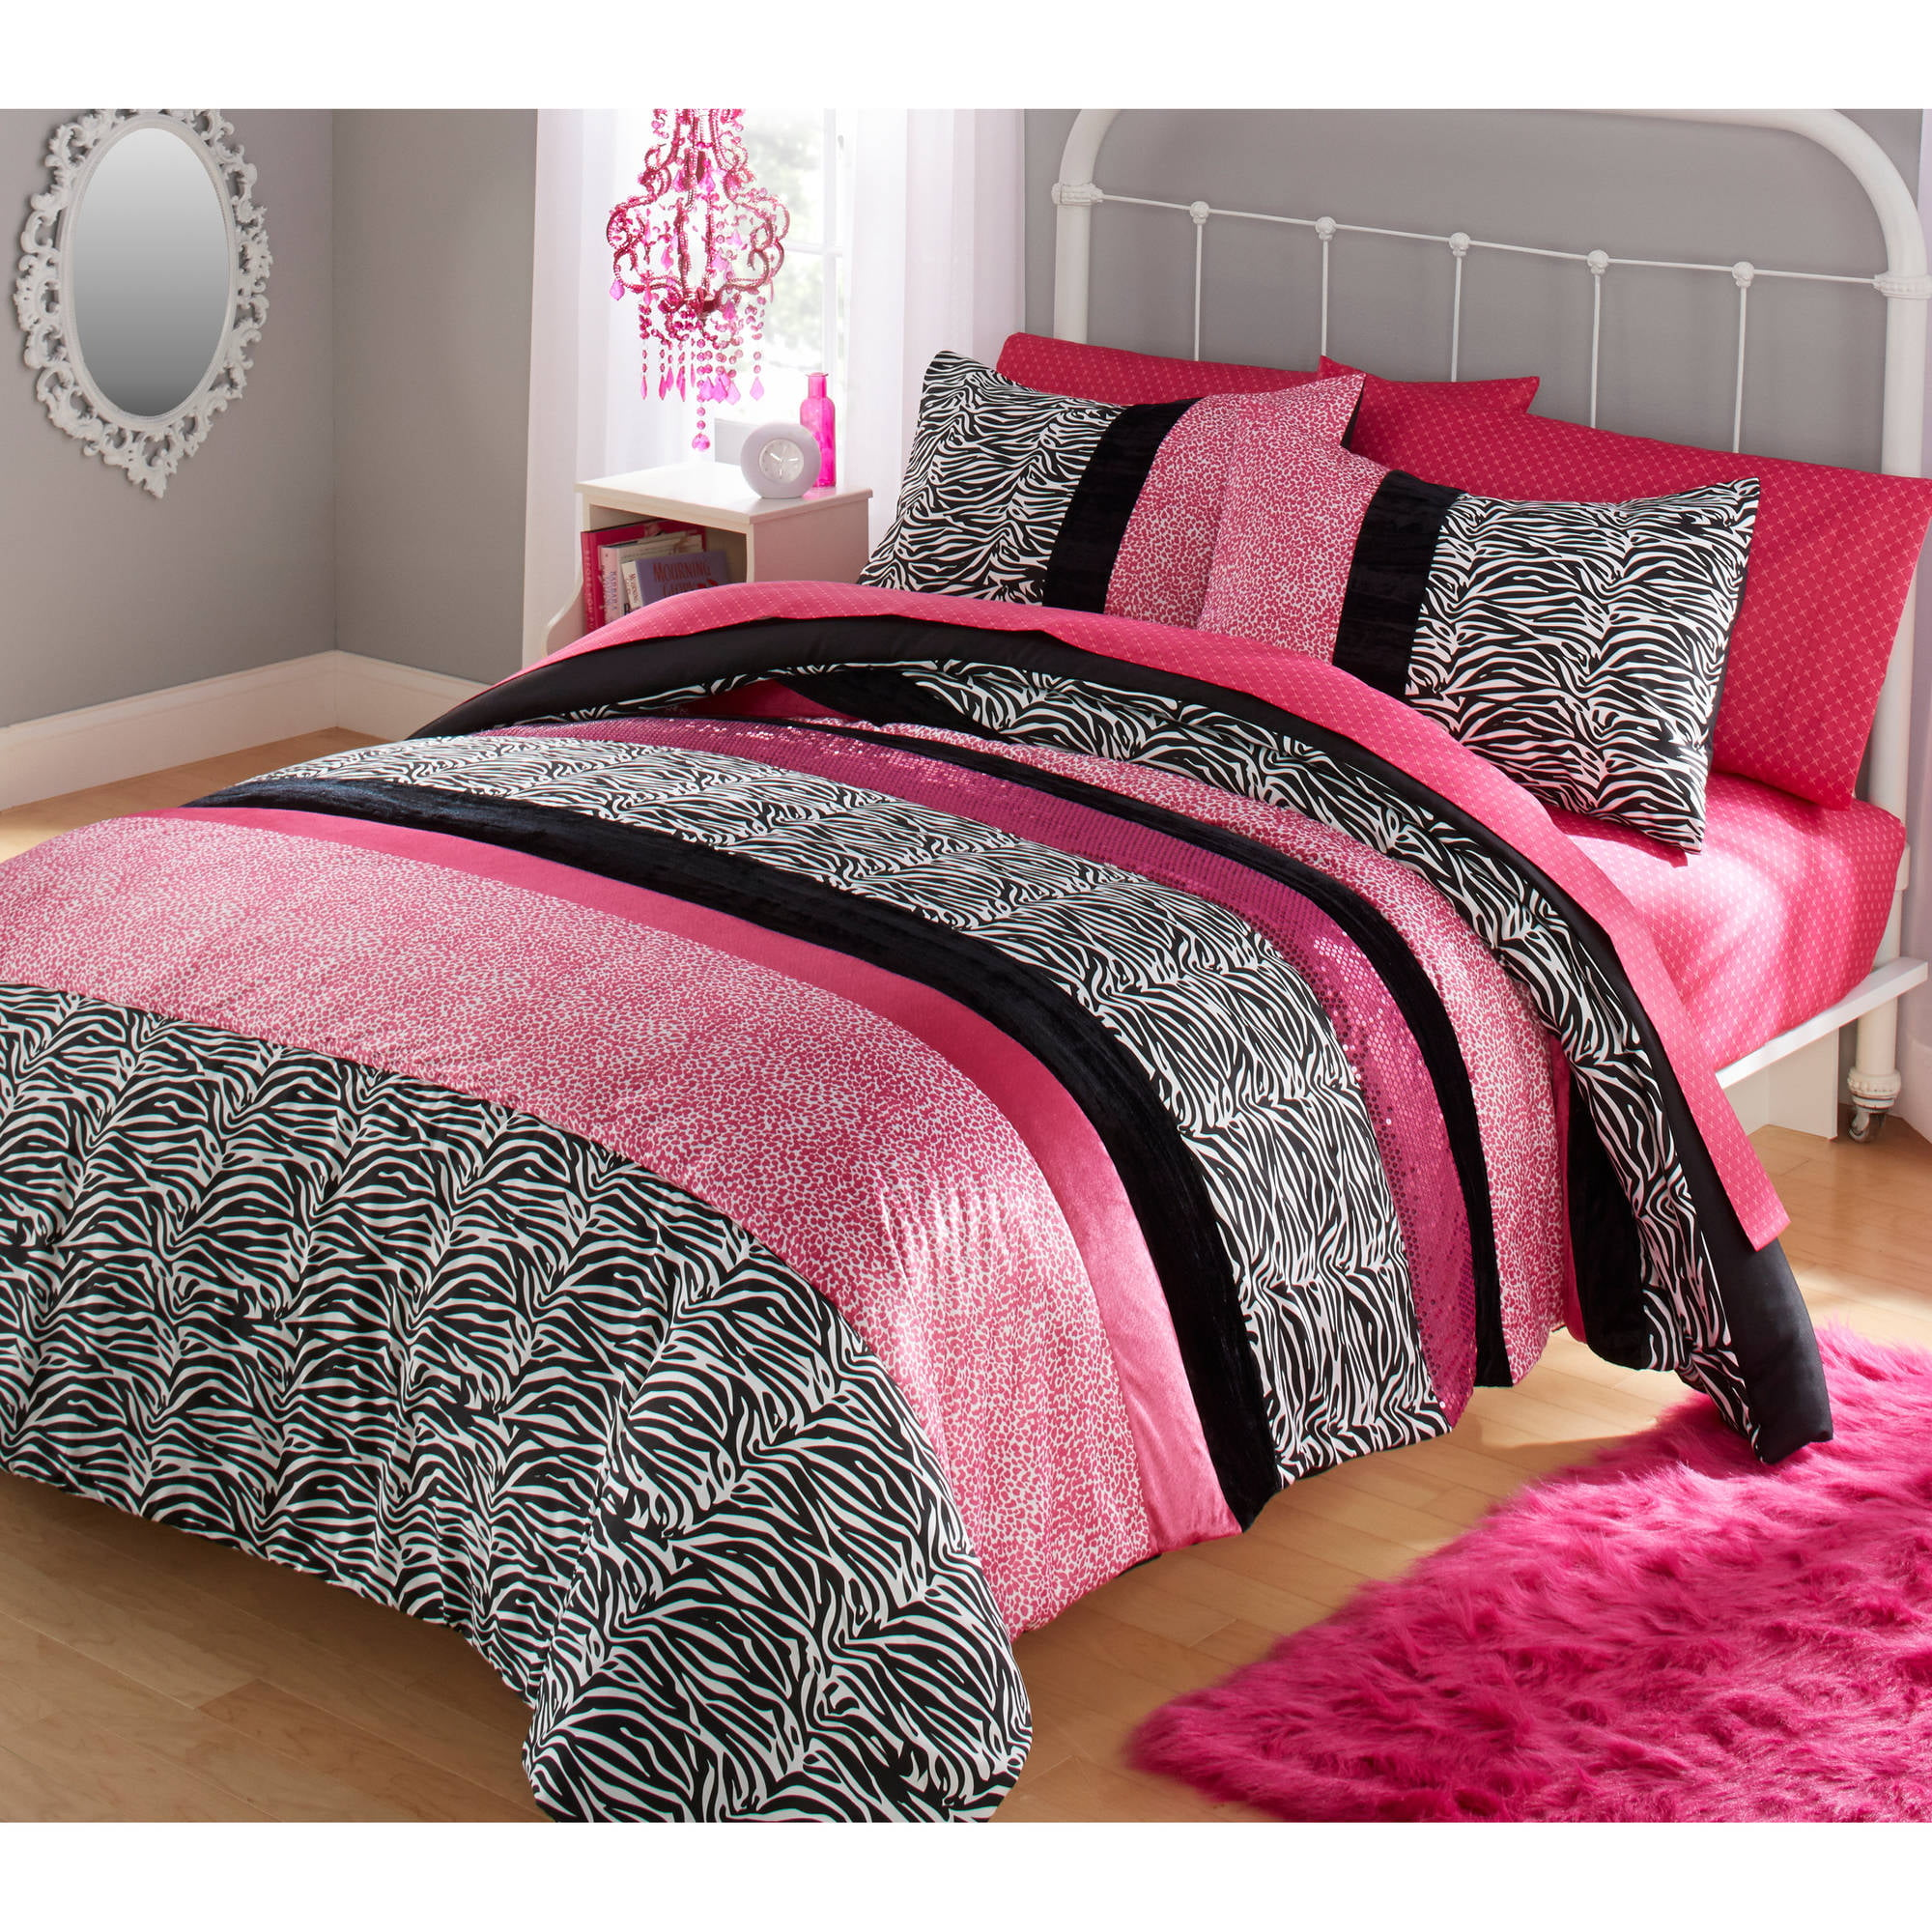 Bedroom Sets For Teens teens' room - every day low prices | walmart